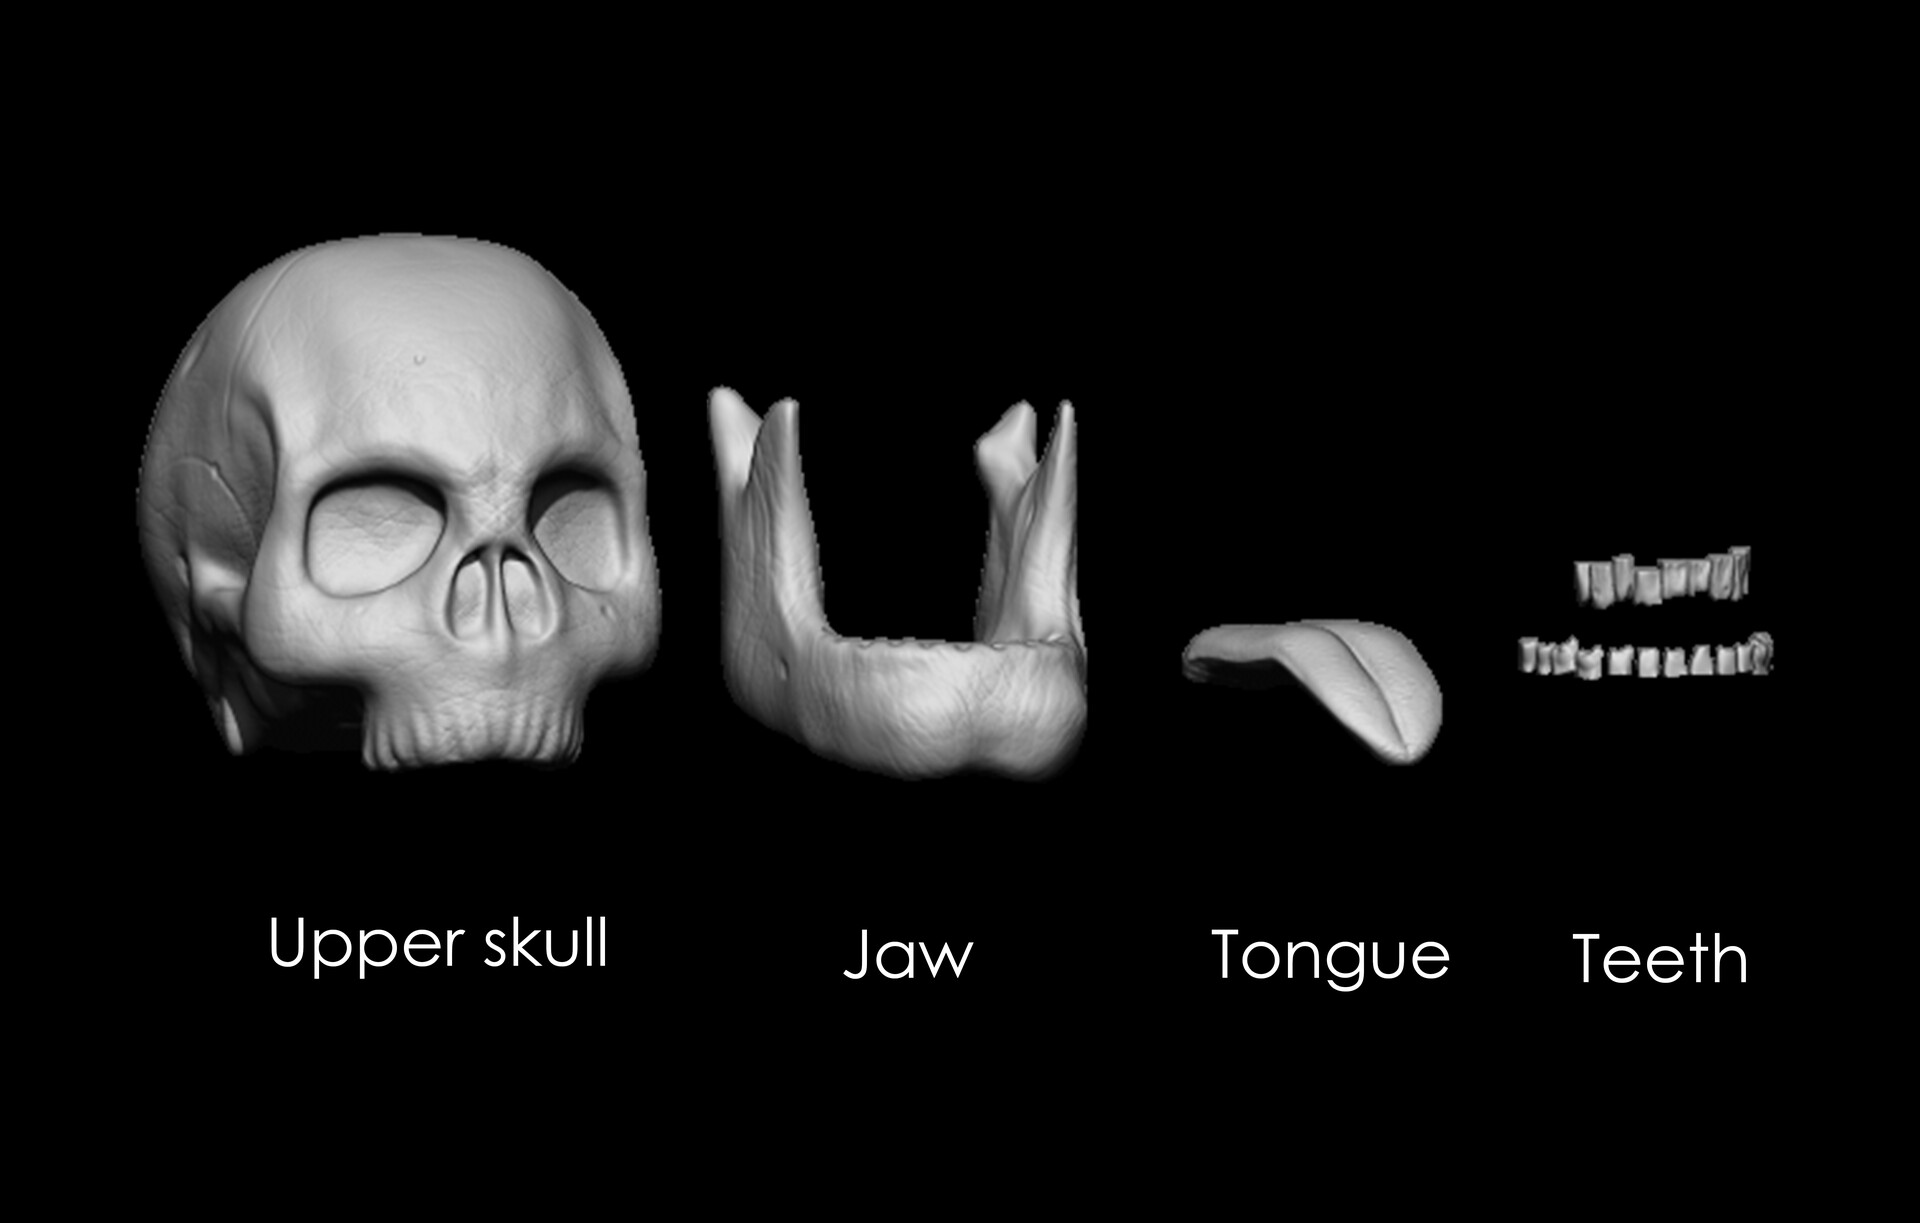 All components of the skull asset